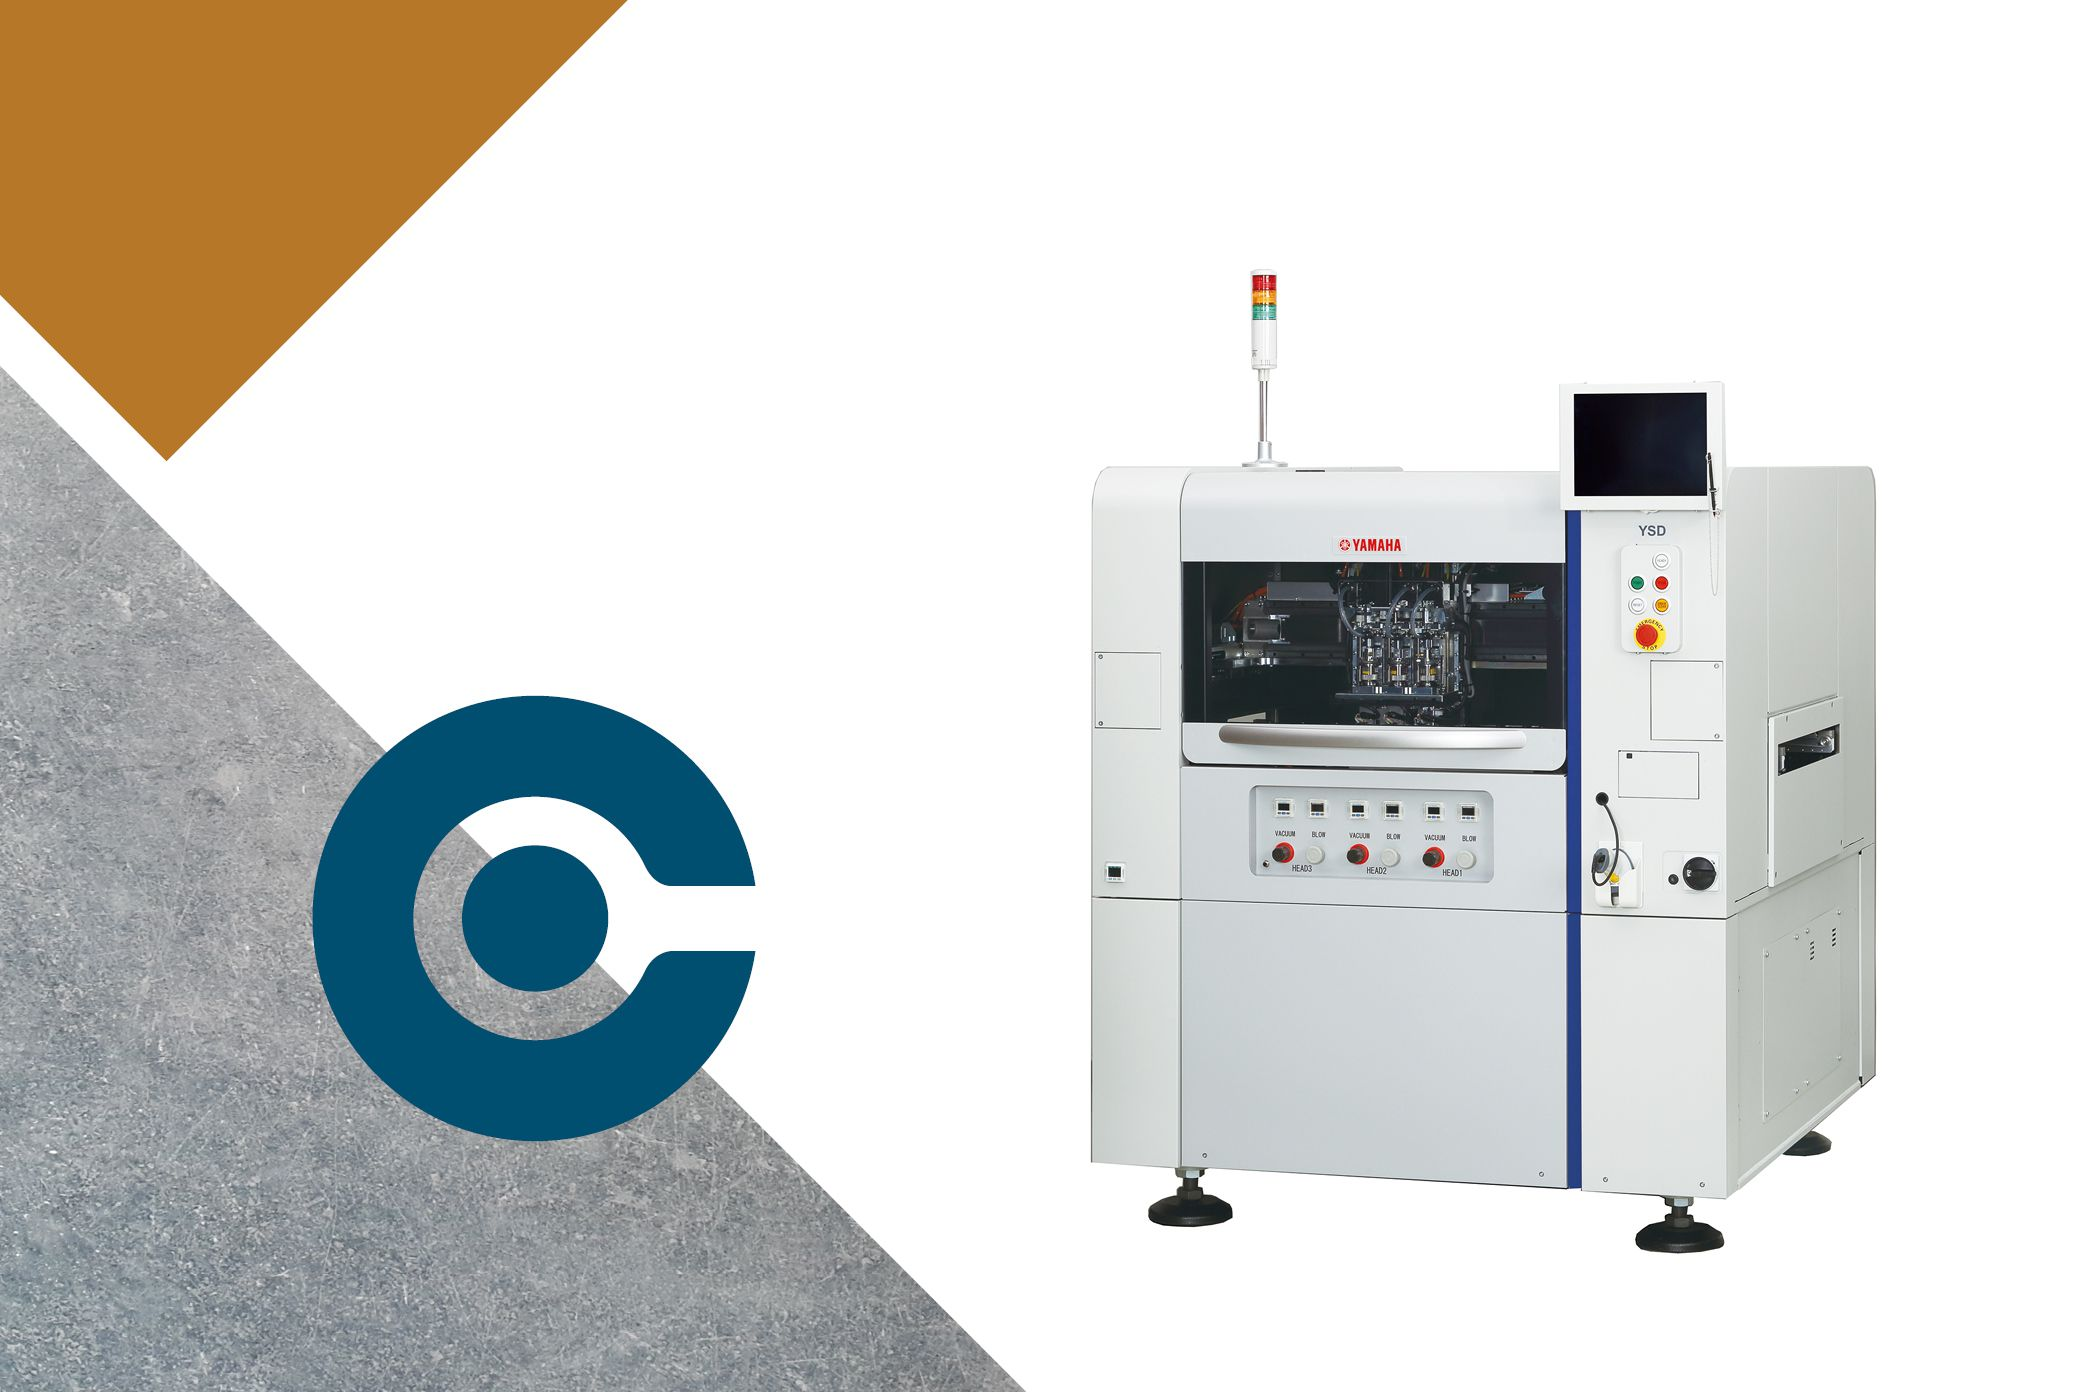 SMT line-up solder paste dispensing units